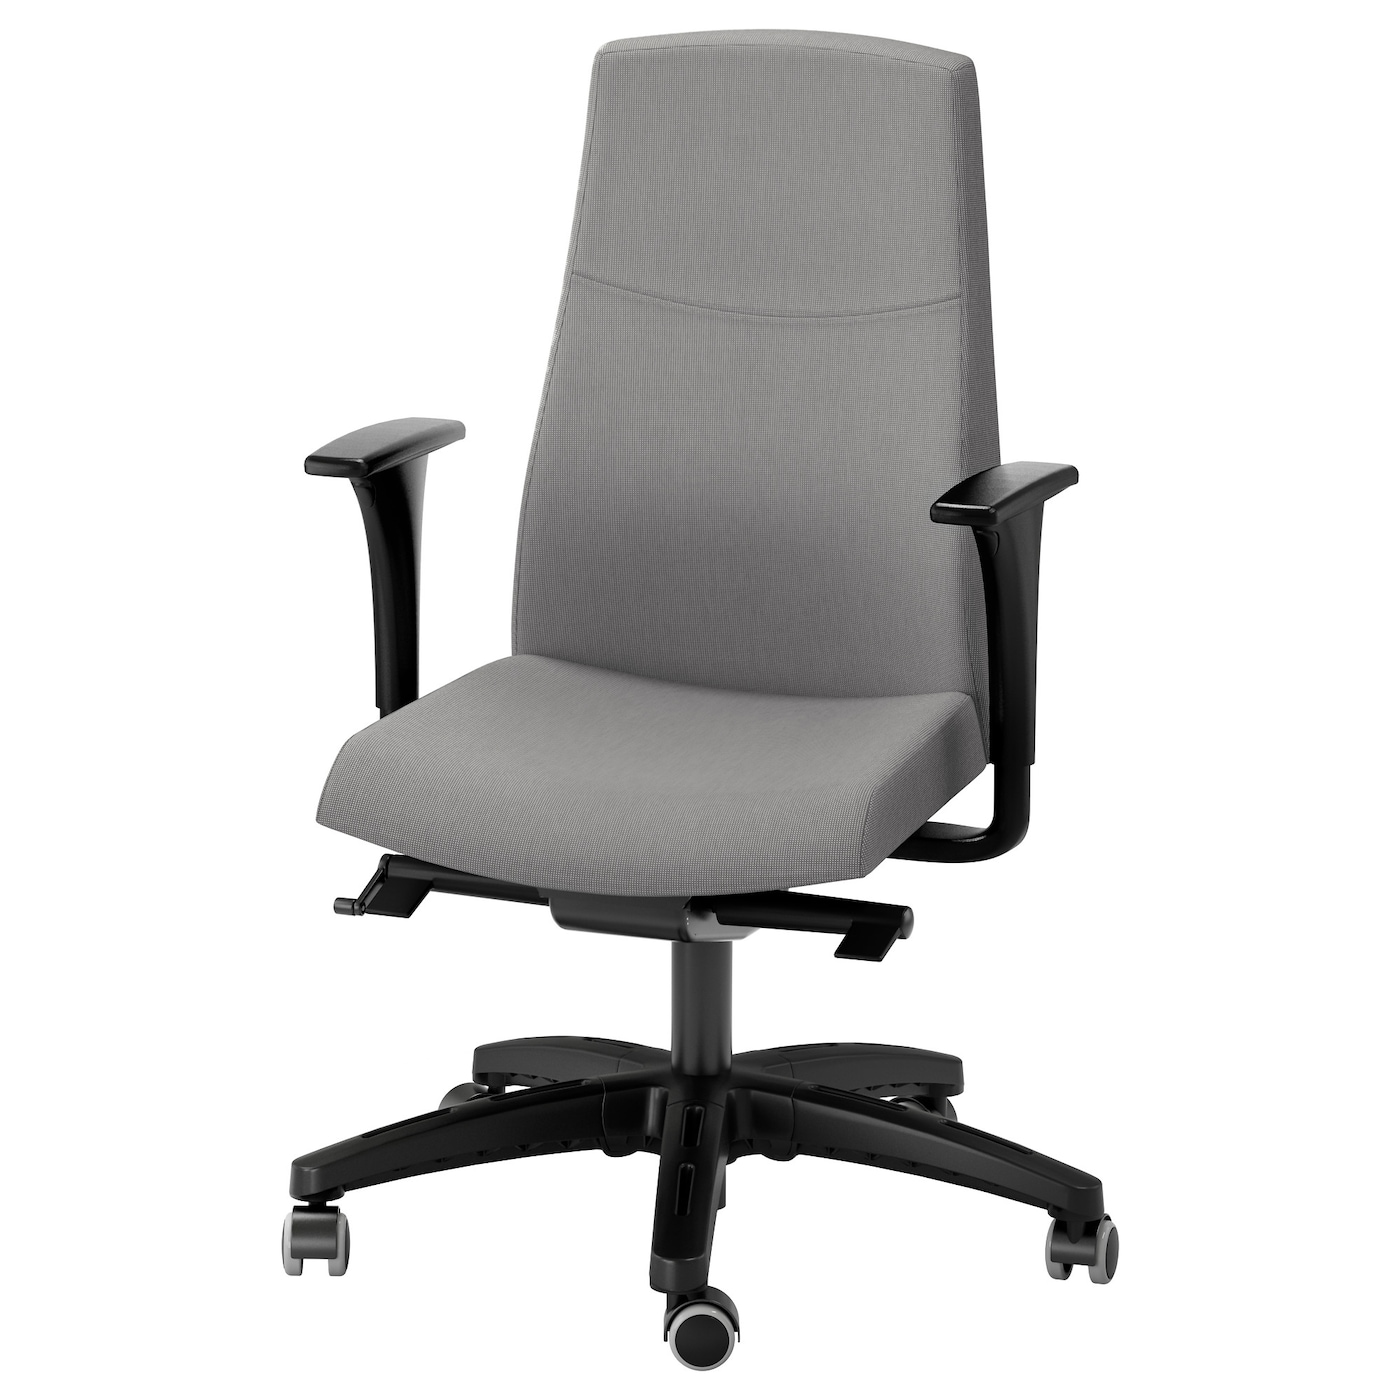 IKEA VOLMAR swivel chair with armrests